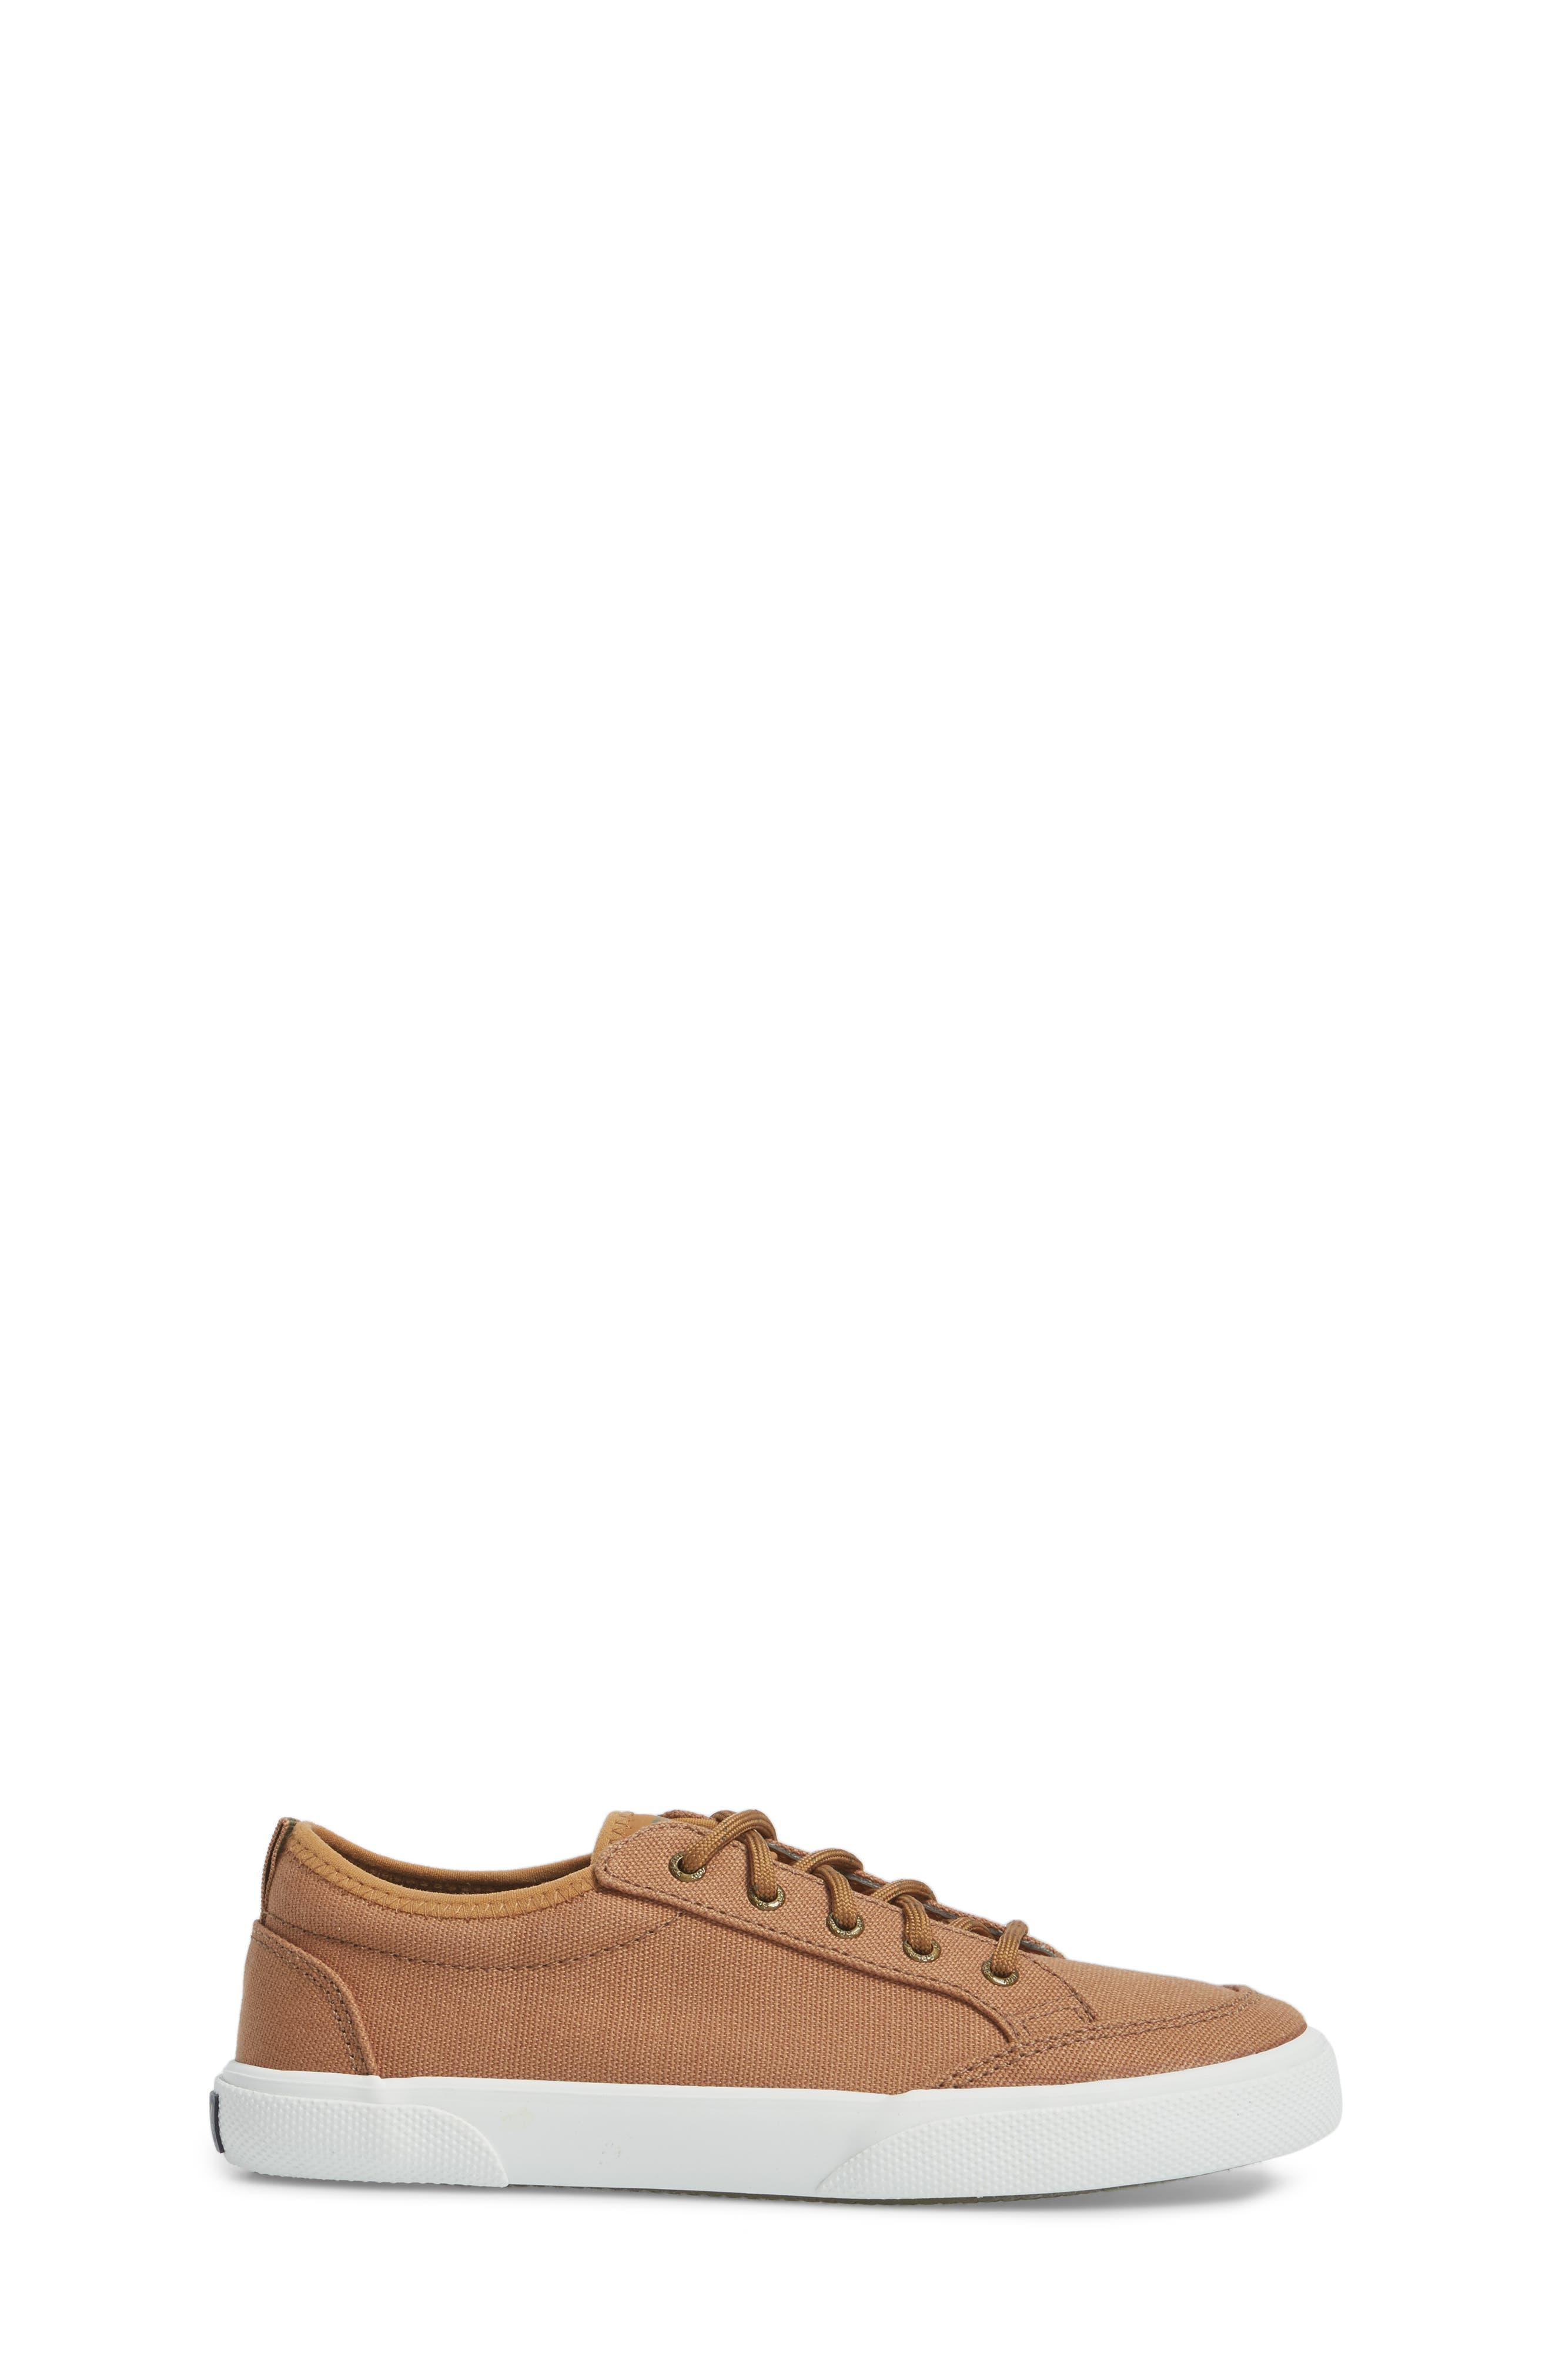 Sperry Deckfin Sneaker,                             Alternate thumbnail 3, color,                             200